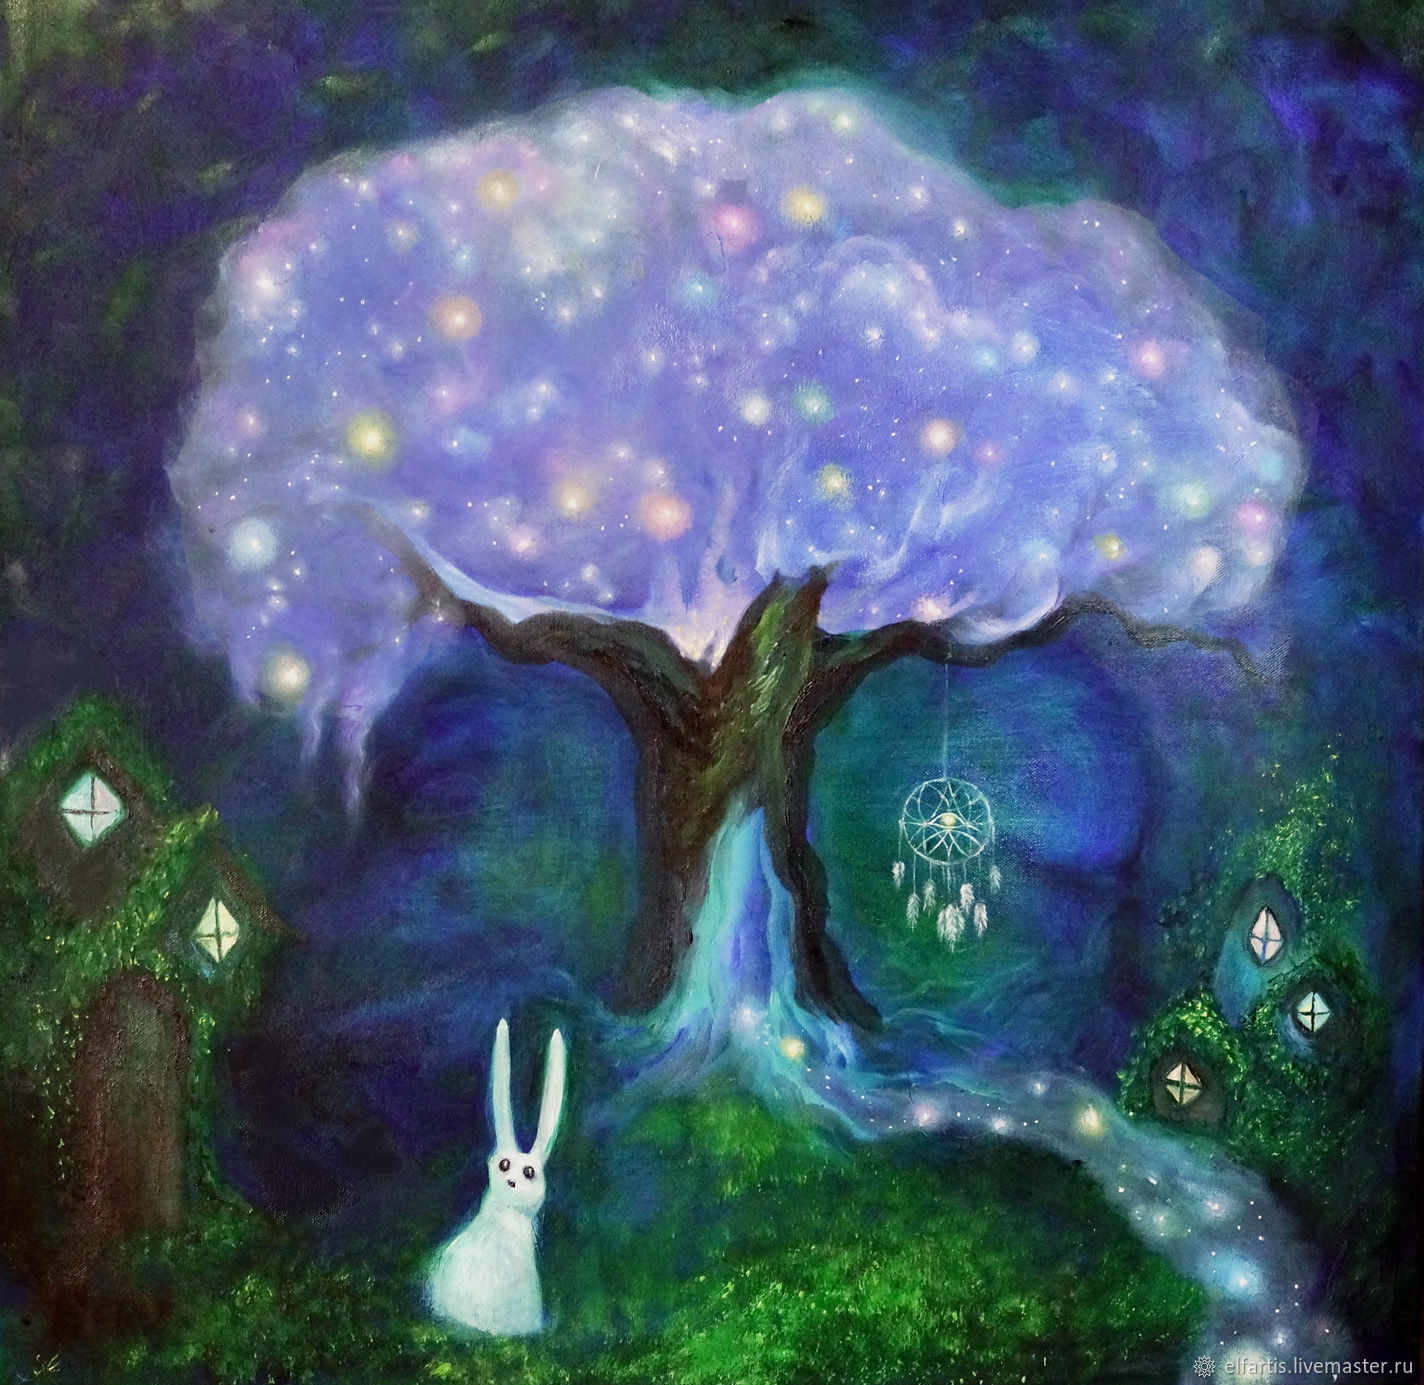 oil painting tree of dreams shop online on livemaster with